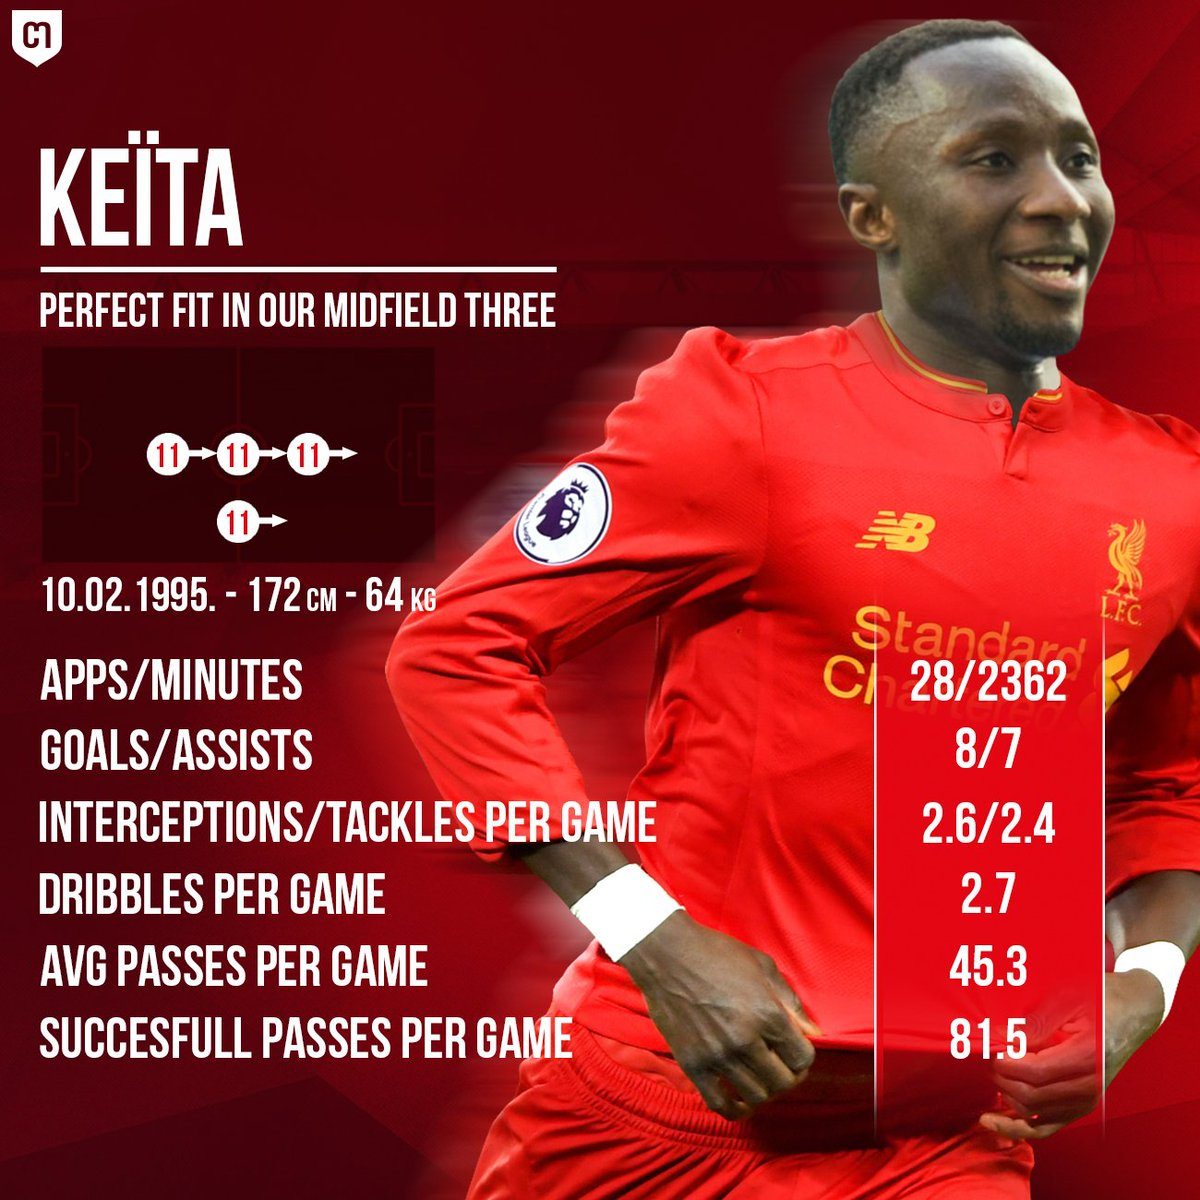 Some stats about #Keita this season, who&#39;s one of our main transfer targets at the moment!    #LFC Transfer Talk  https:// twitter.com/i/moments/8557 35573704843264 &nbsp; … <br>http://pic.twitter.com/wTzl940rcO